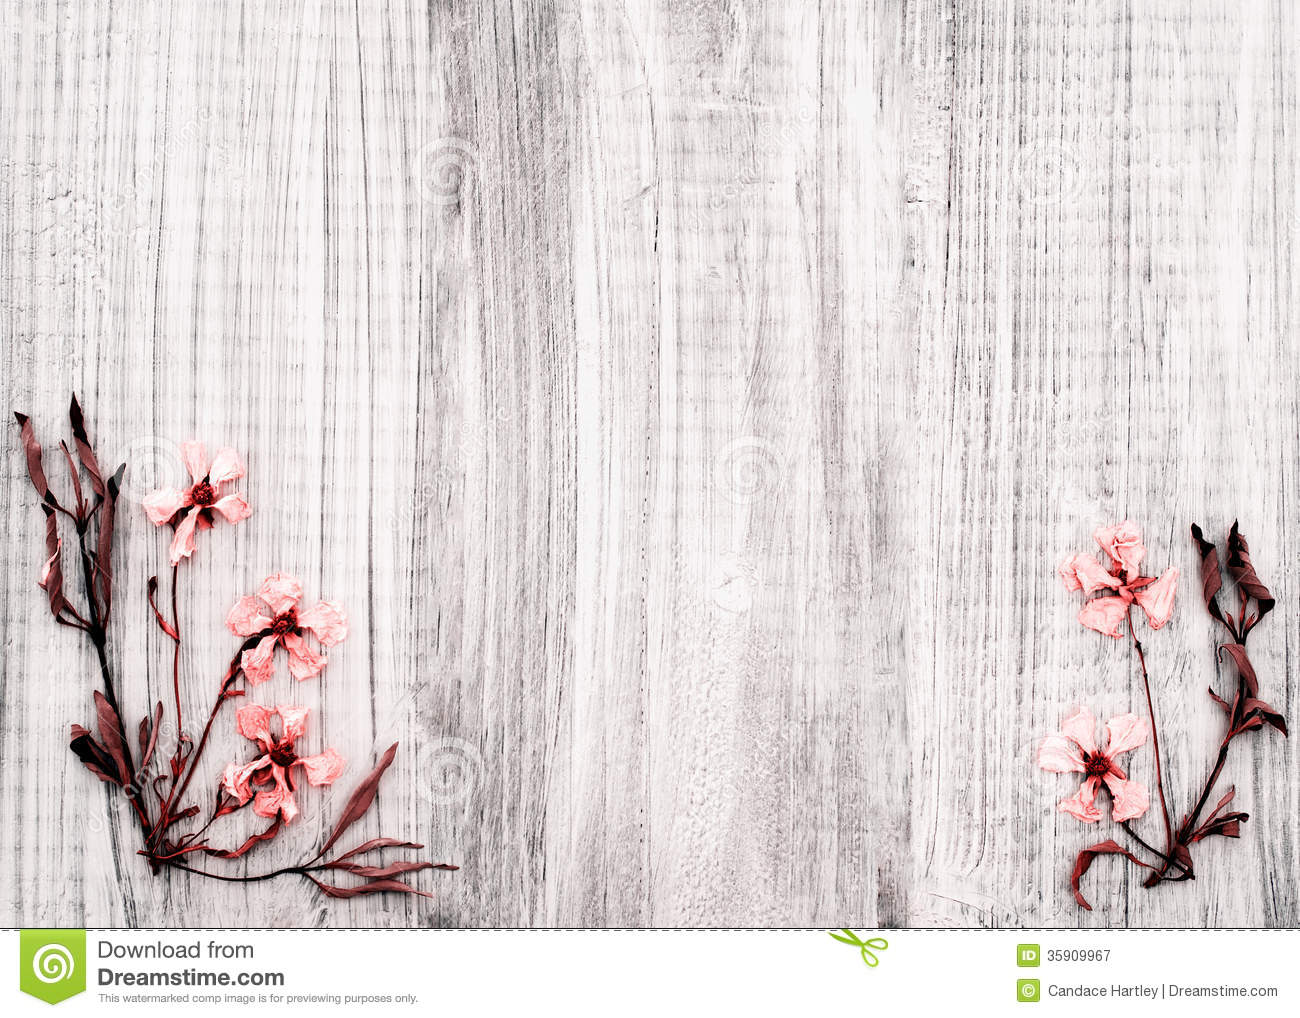 Pretty Dried Rock Rose Flowers On Rustic White Wood Background